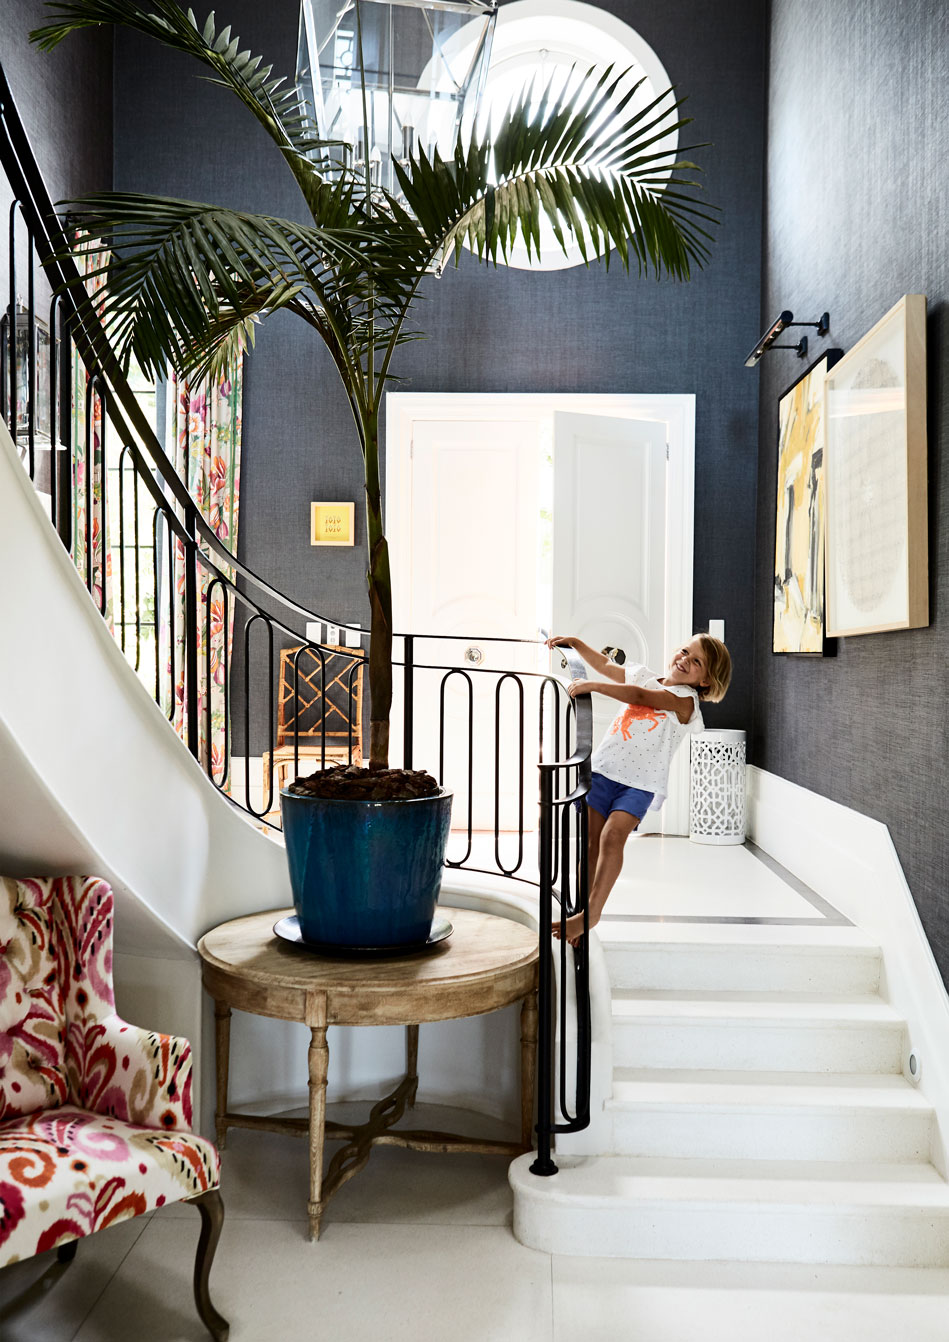 Homeowner and interior designer Kim Stephen!&s daughter Anna at play in the elegant entrance hall and stairwell. Key decor elements here include a textured grey wallpaper.